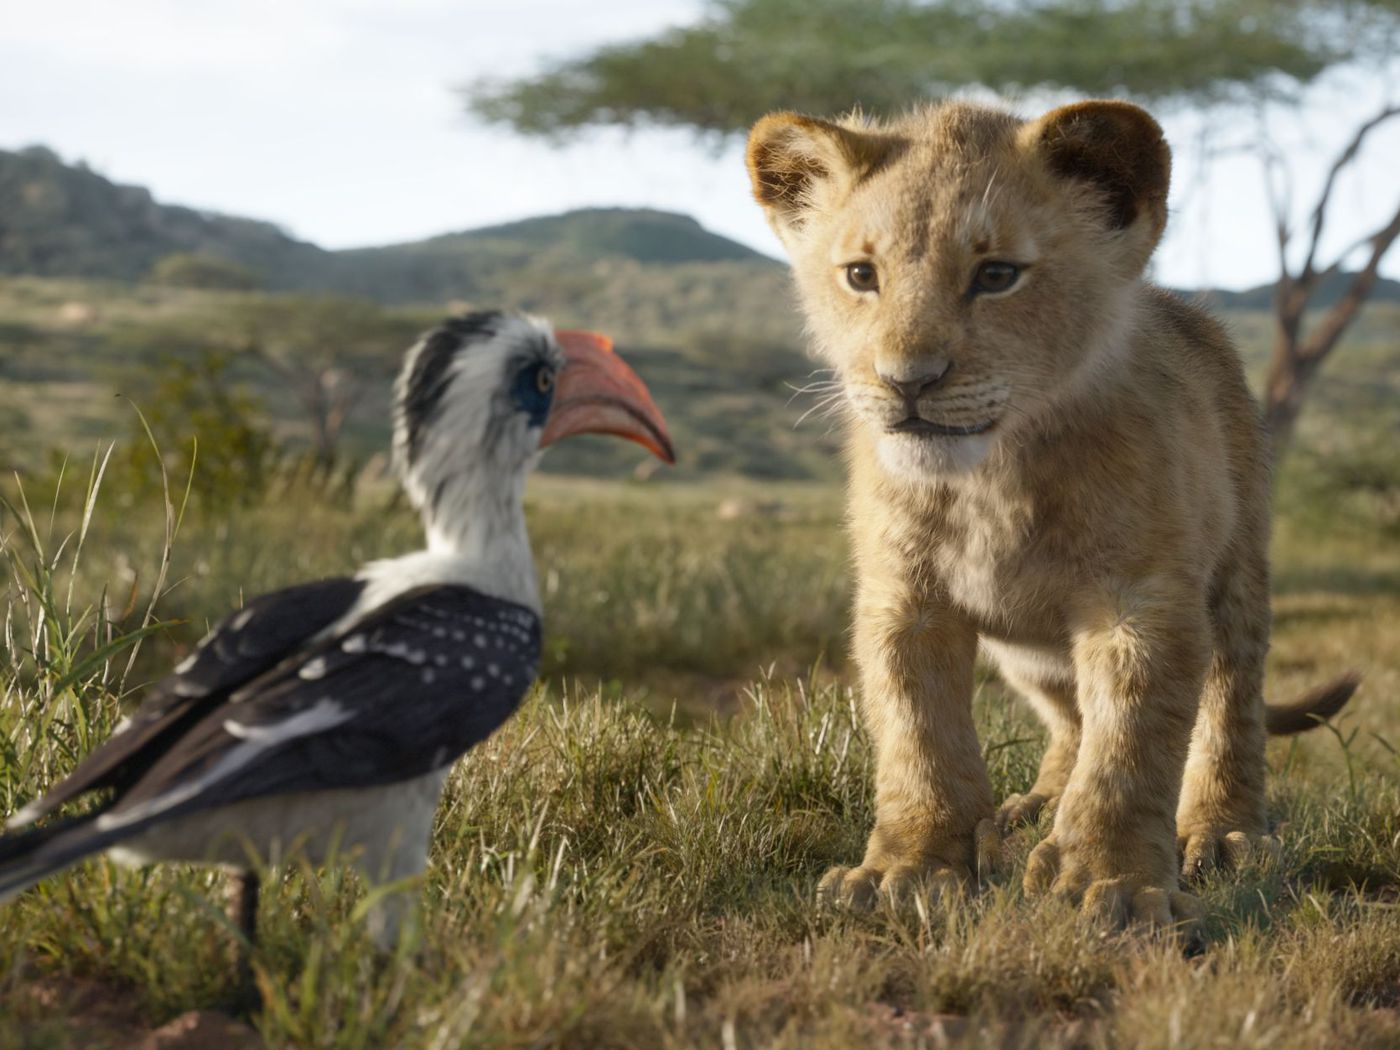 Lion King 2019 review: Disney's live-action update is pretty